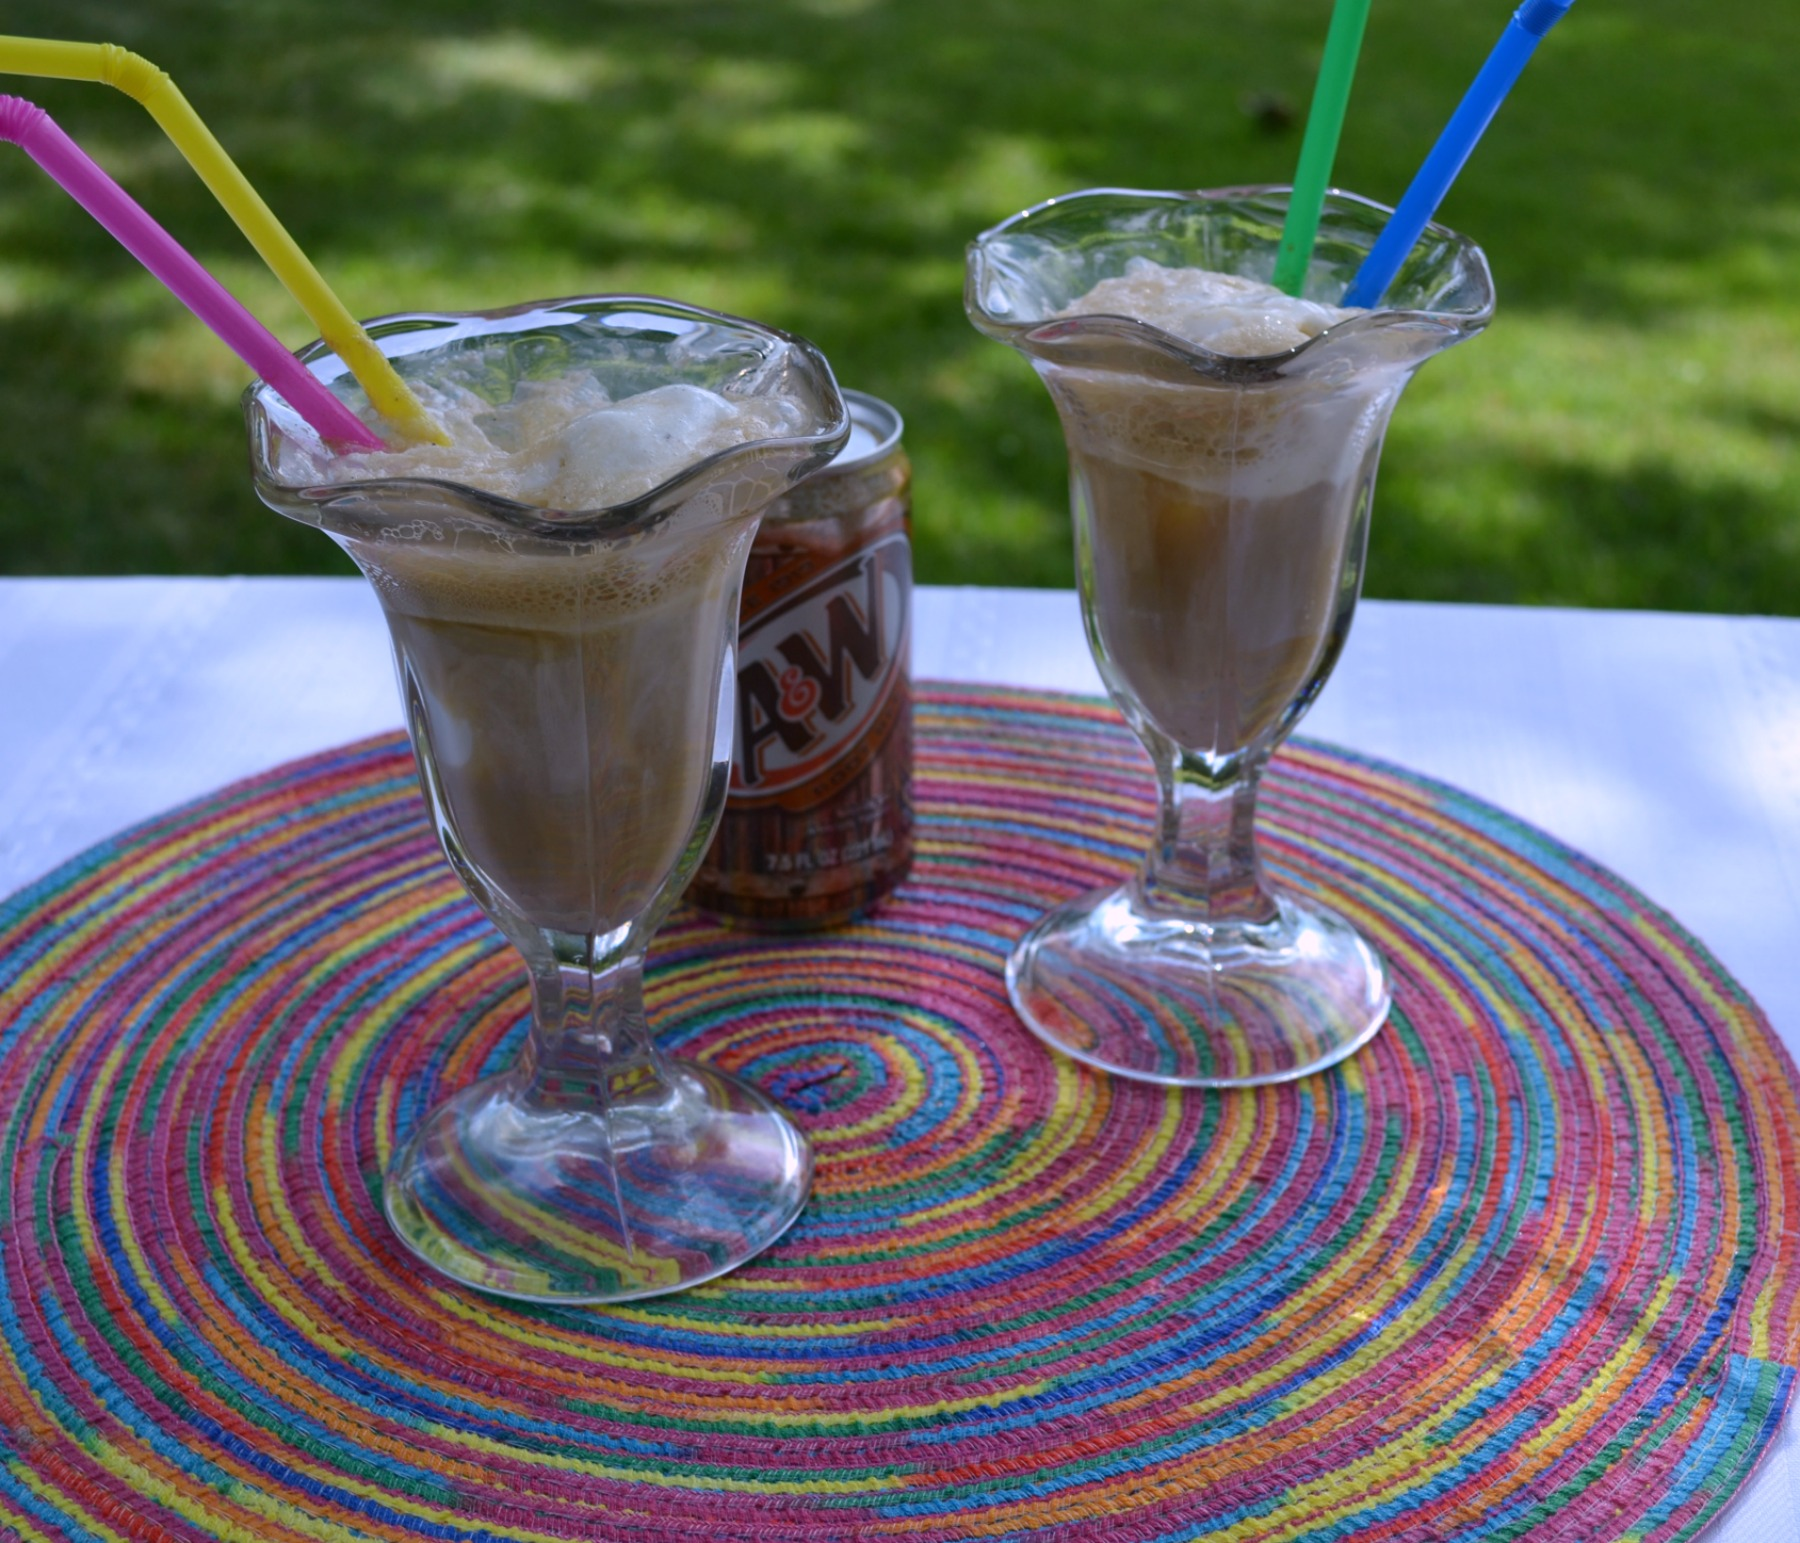 cook-out foods, root beer floats